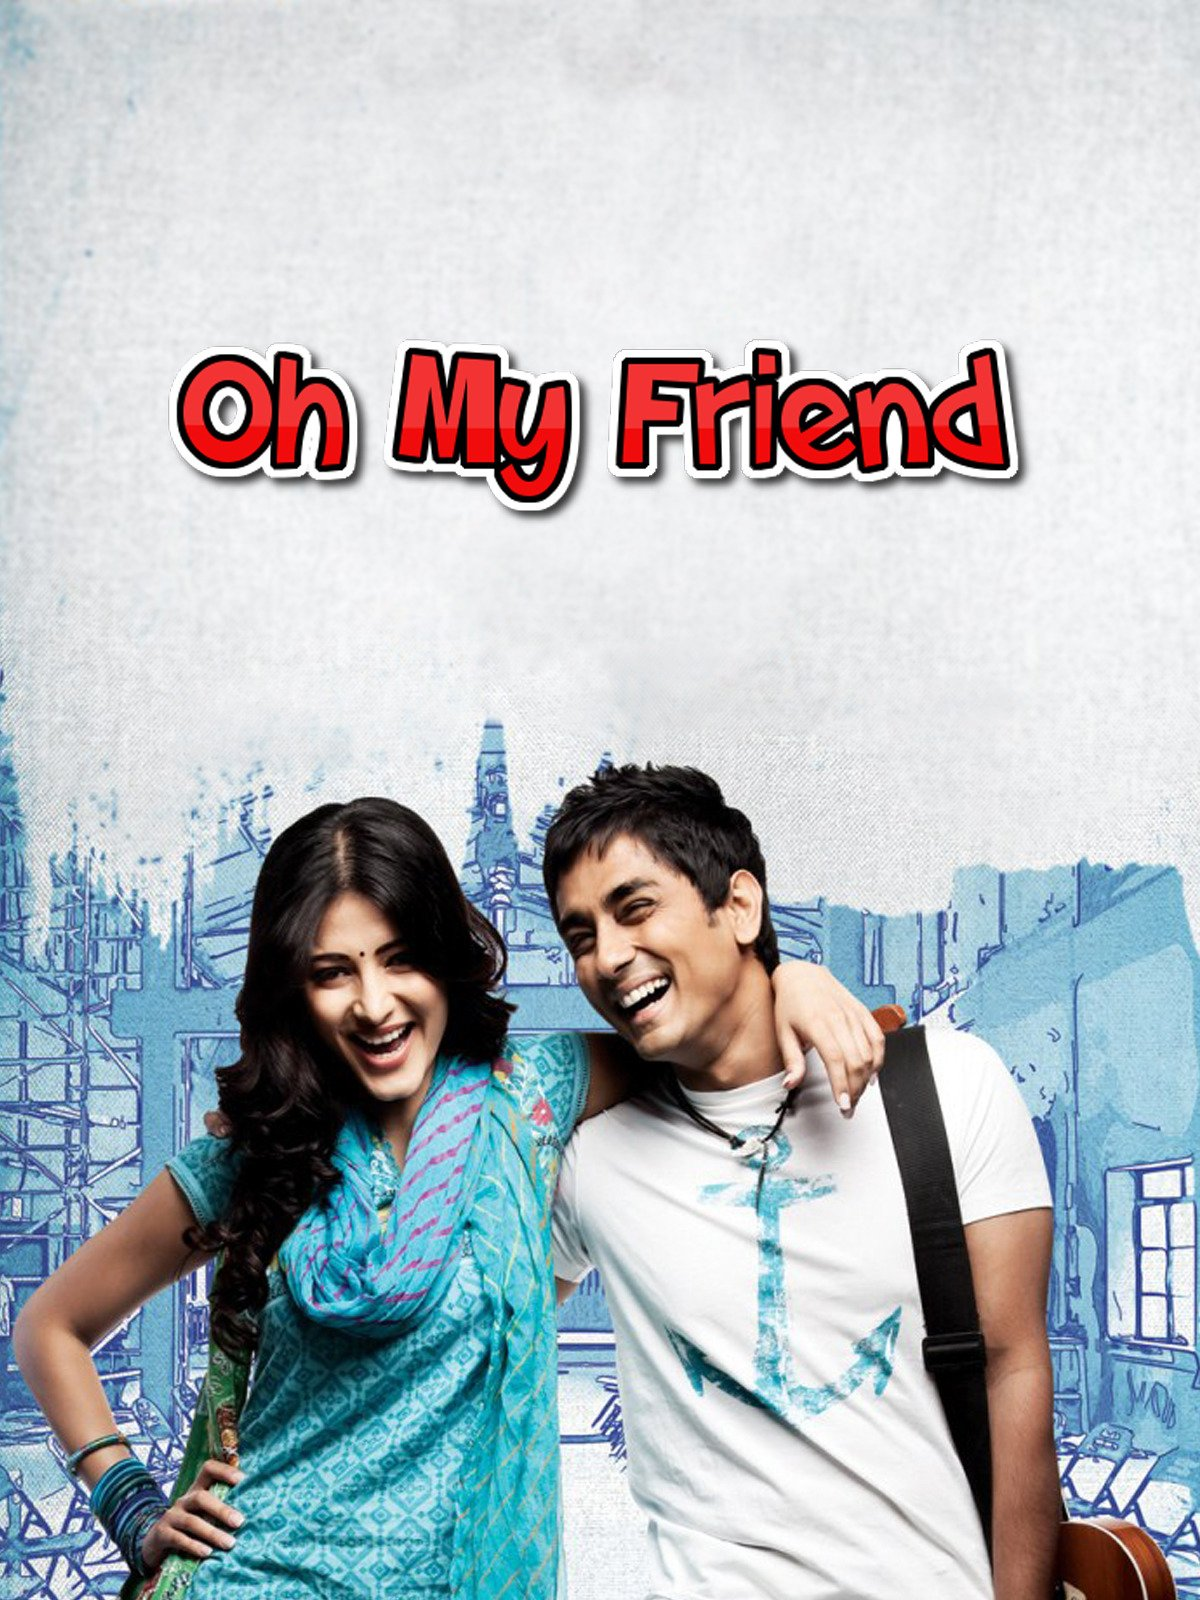 Oh My Friend 2020 Hindi Dubbed 300MB HDRip Download